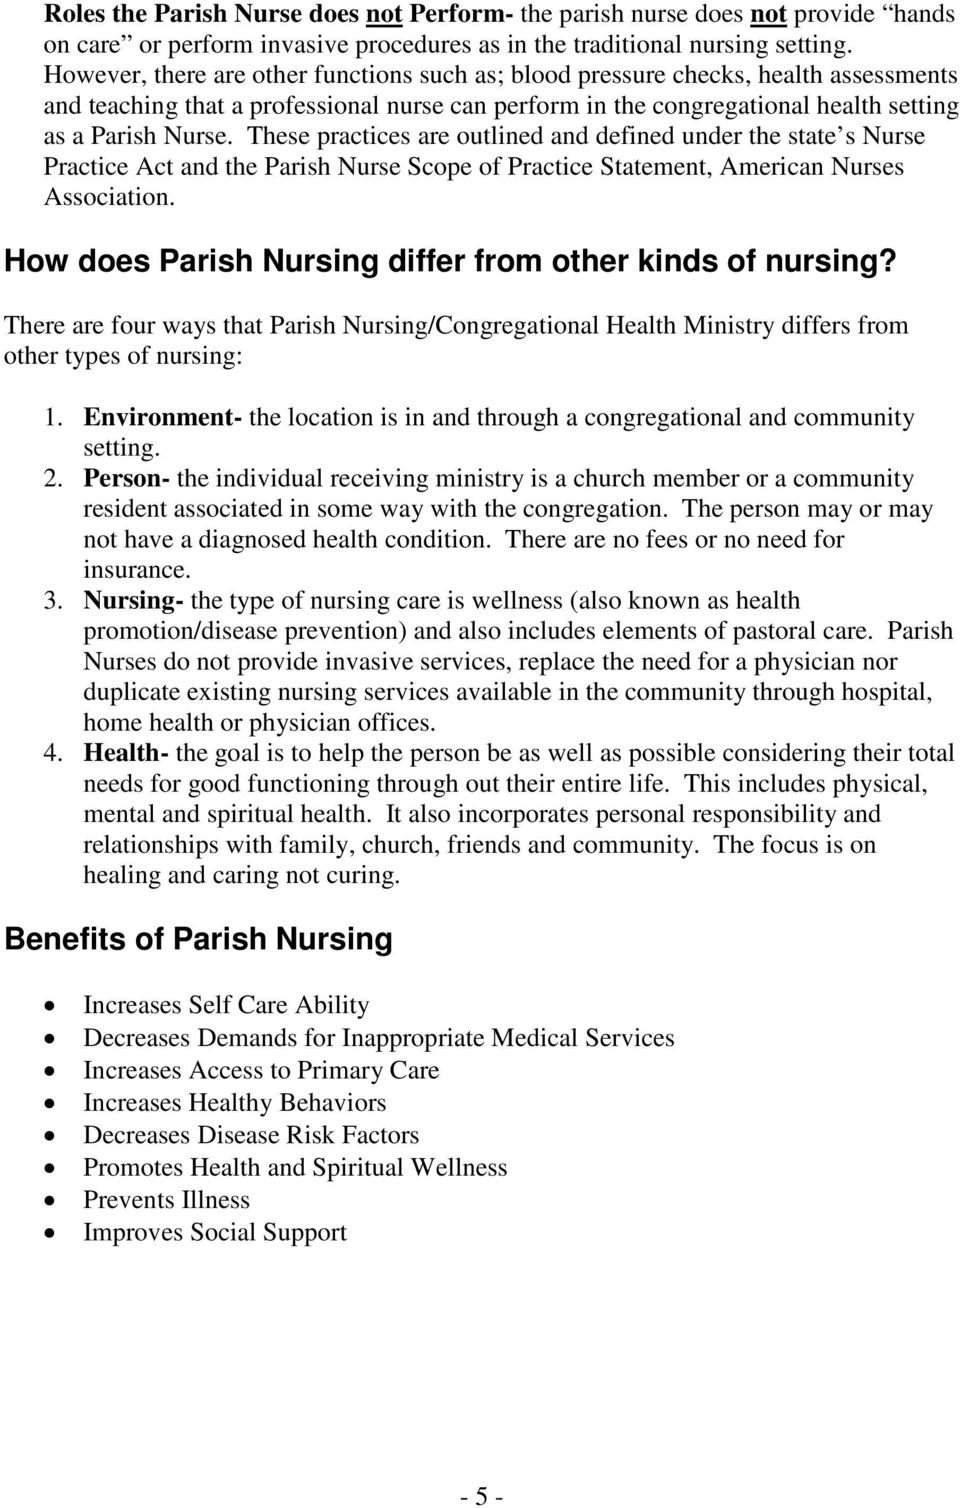 These practices are outlined and defined under the state s Nurse Practice Act and the Parish Nurse Scope of Practice Statement, American Nurses Association.